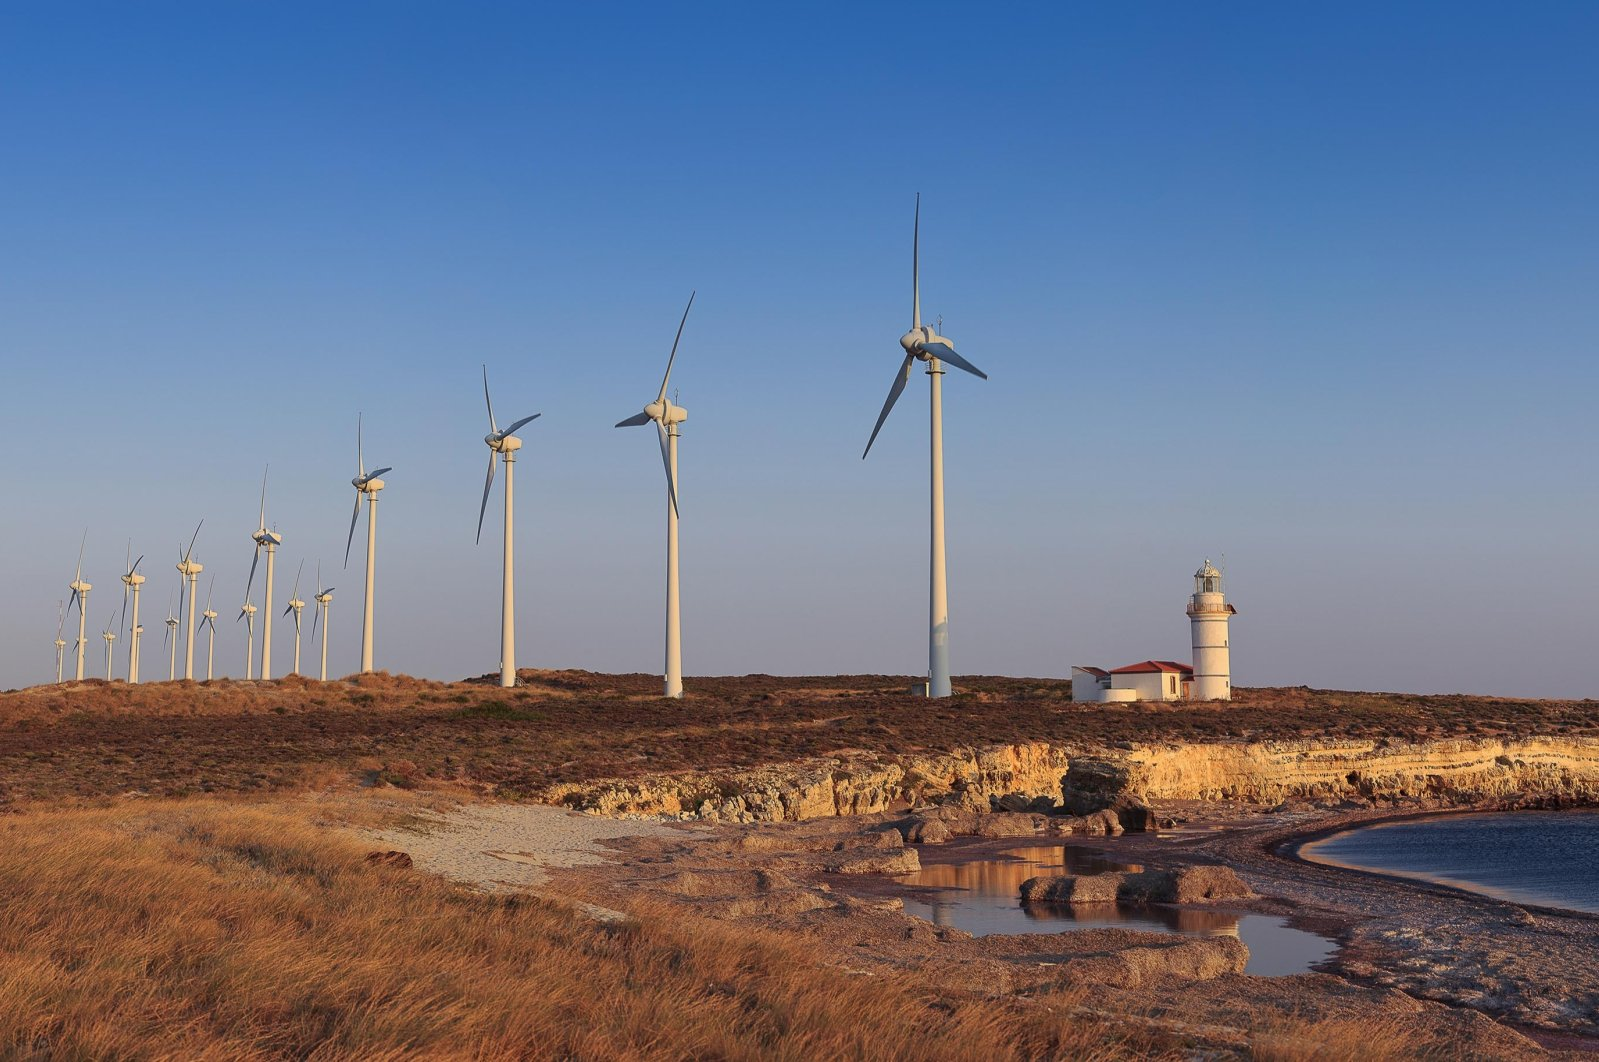 Windmills produce energy near a lighthouse on Bozcaada island near Çanakkale province, northwestern Turkey in this undated file photo. (Shutterstock photo by Serhat Akavcı)